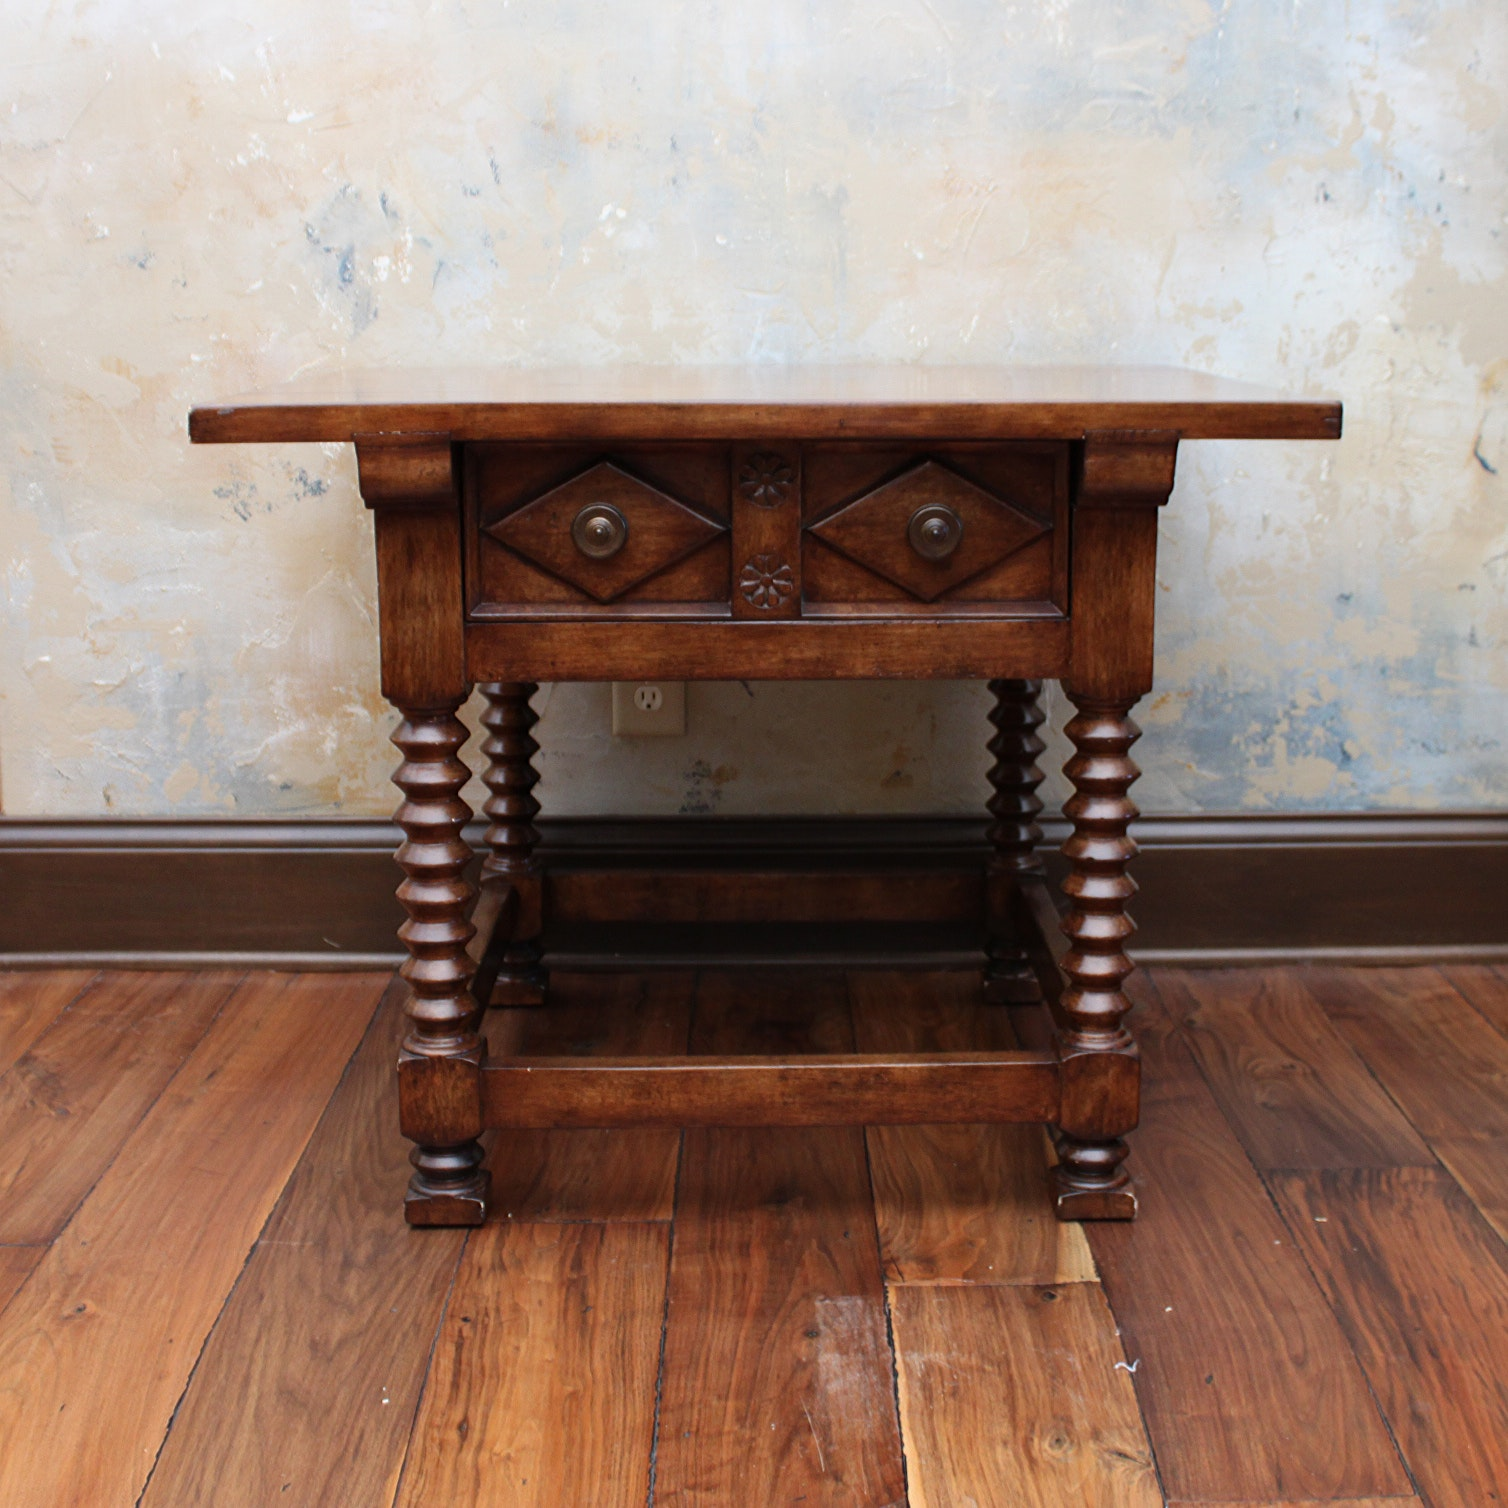 Spanish Revival Style Side Table